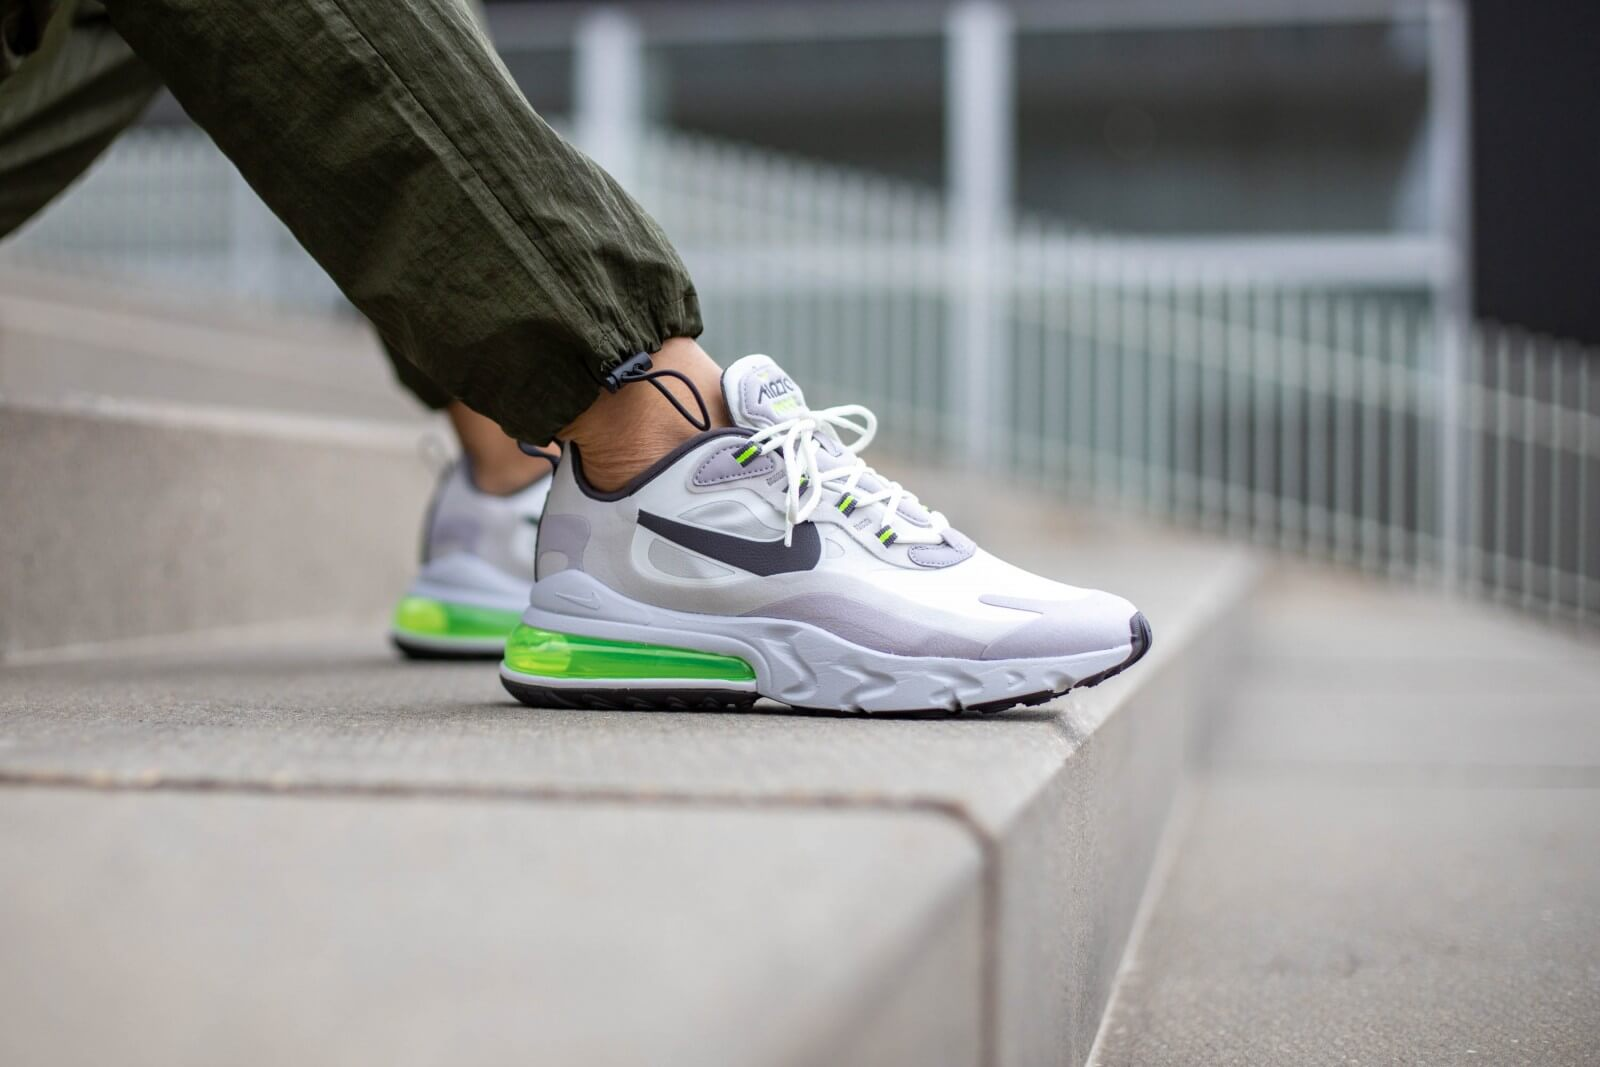 Nike Air Max 270 React Summit WhiteElectric Green CI3866 100